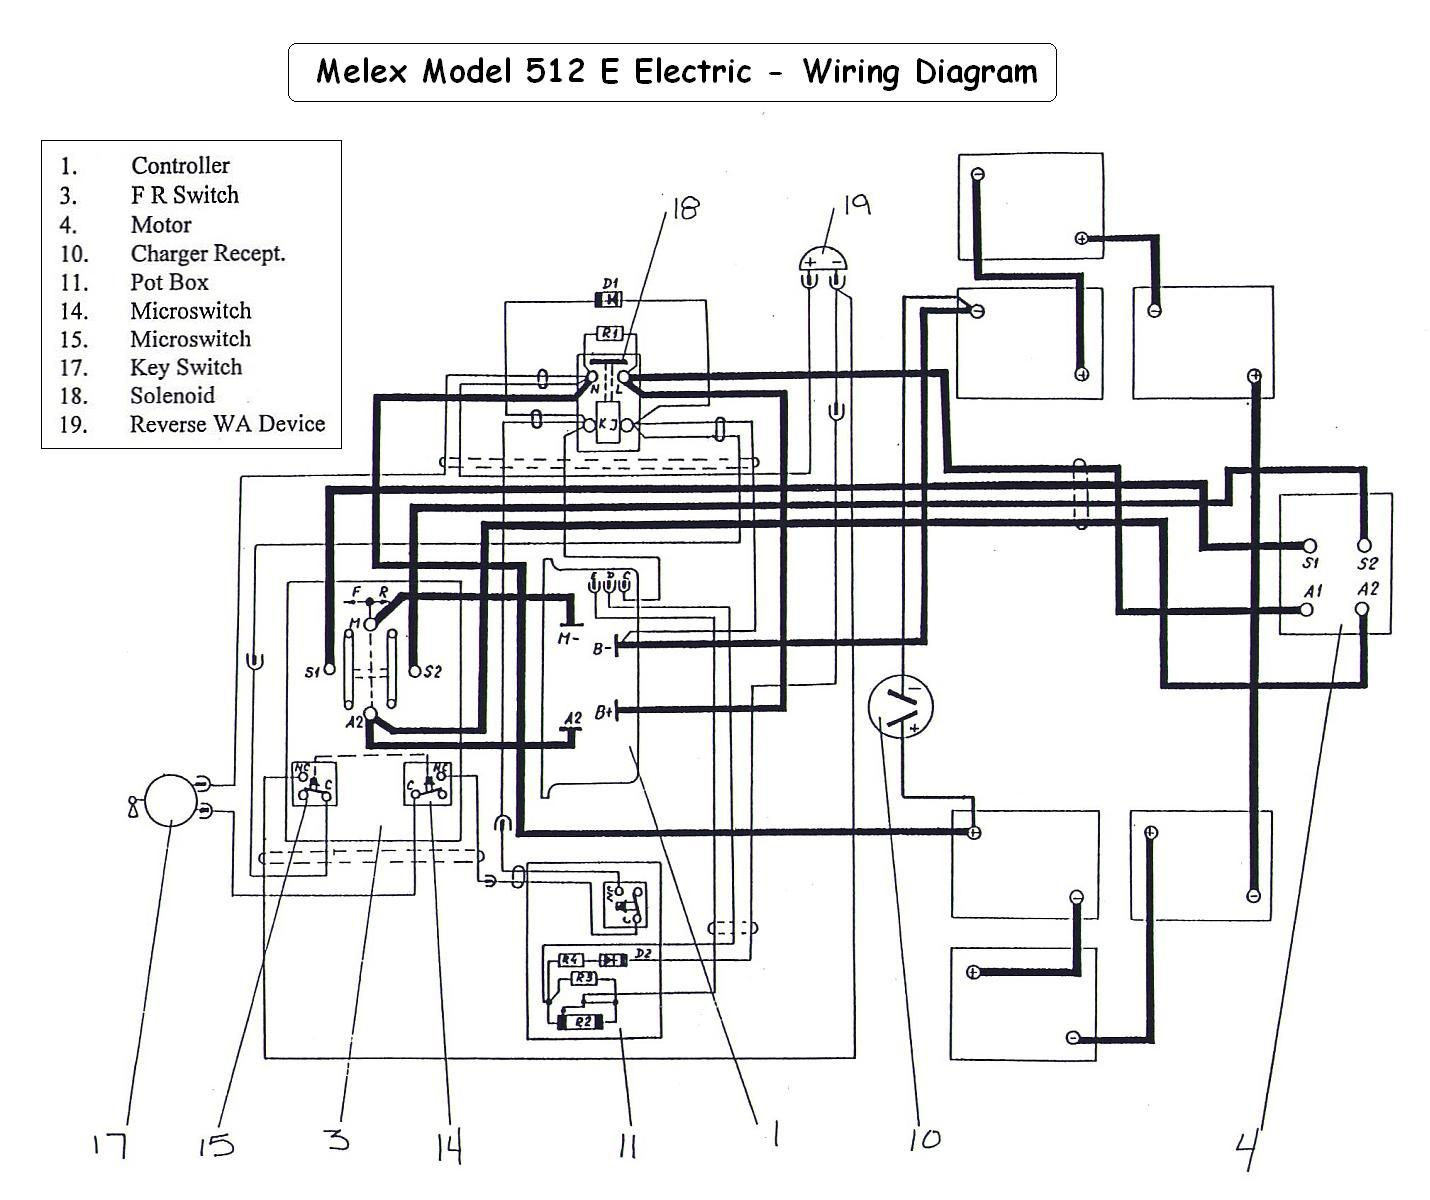 1987 club car 36 volt wiring diagram excretory system labeled harley davidson 2000 free engine